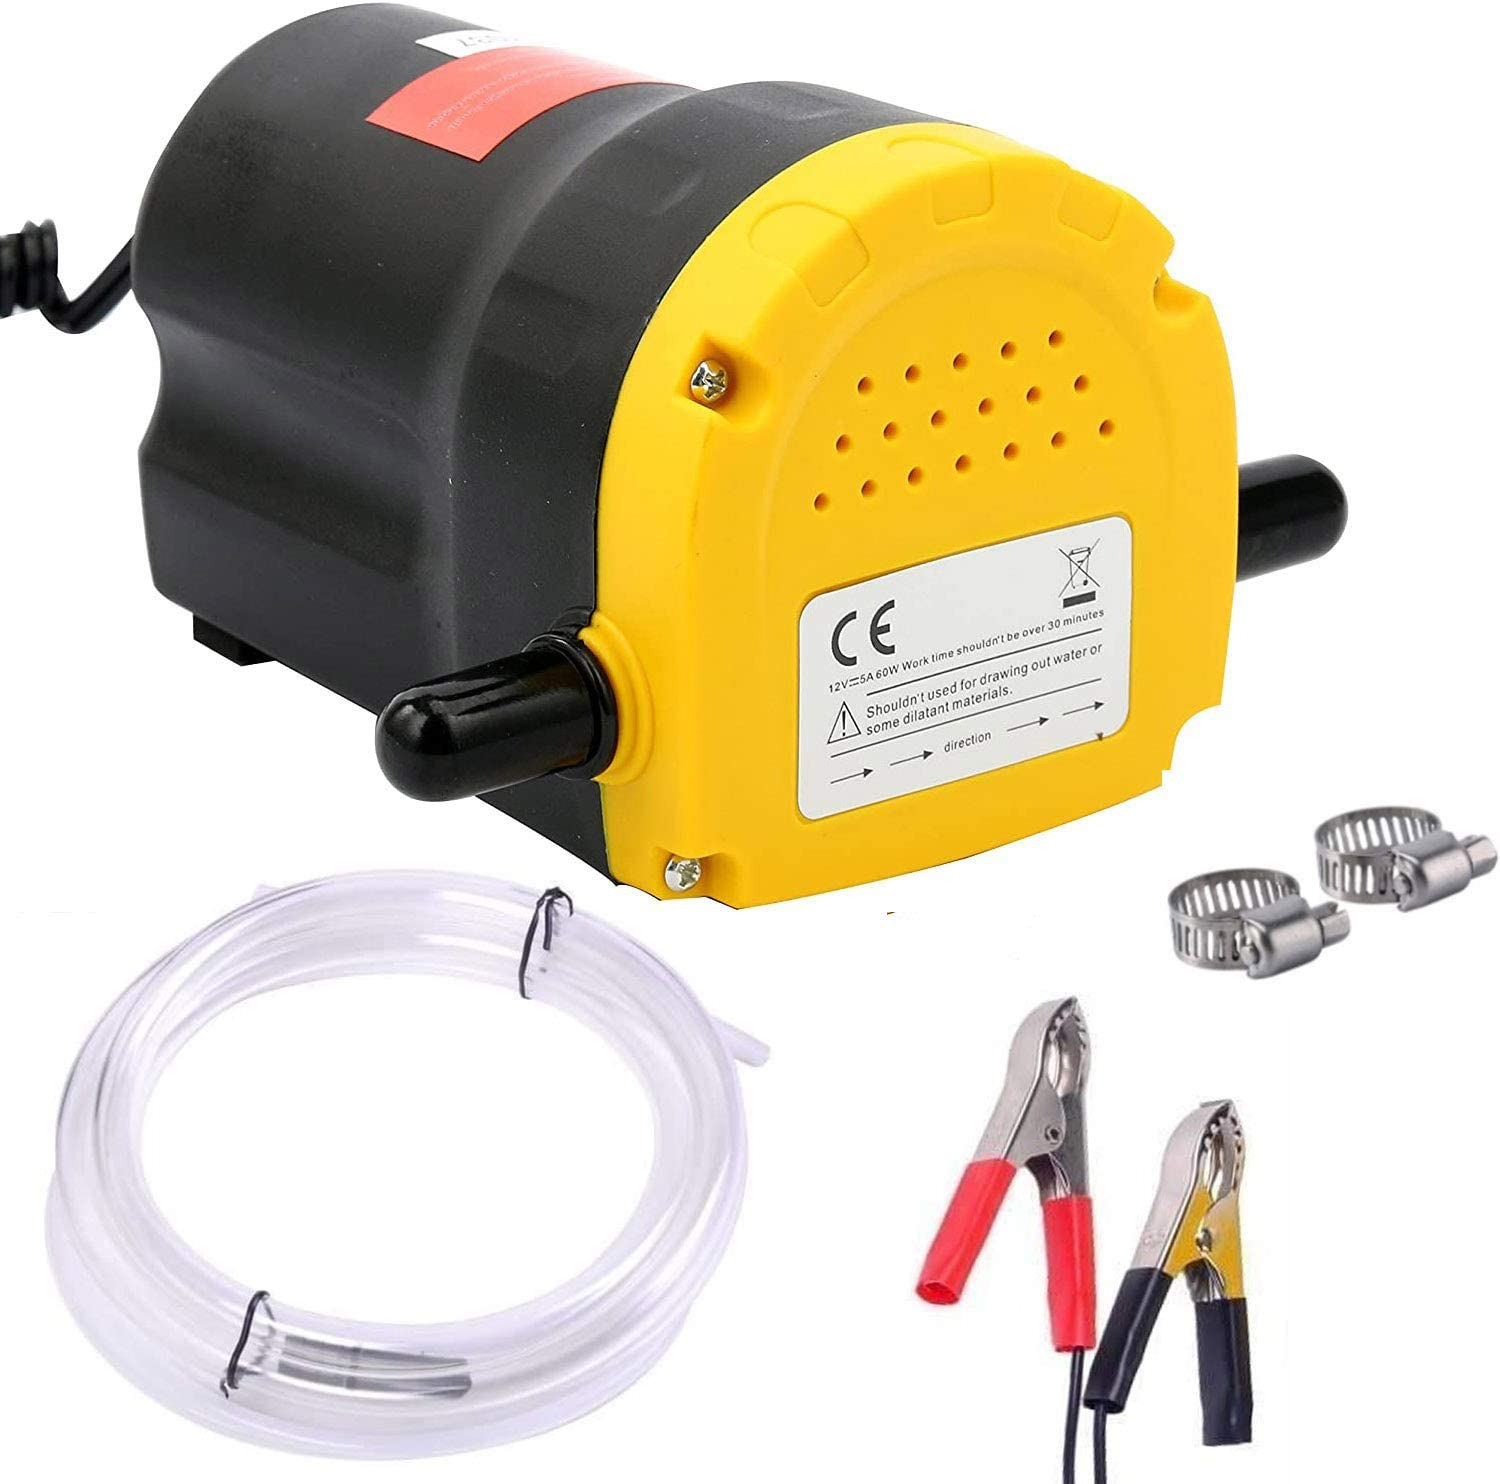 At the price of surprise YaeTek Ranking TOP4 12V 60W Oil Extraction Extractor Change Pump Die